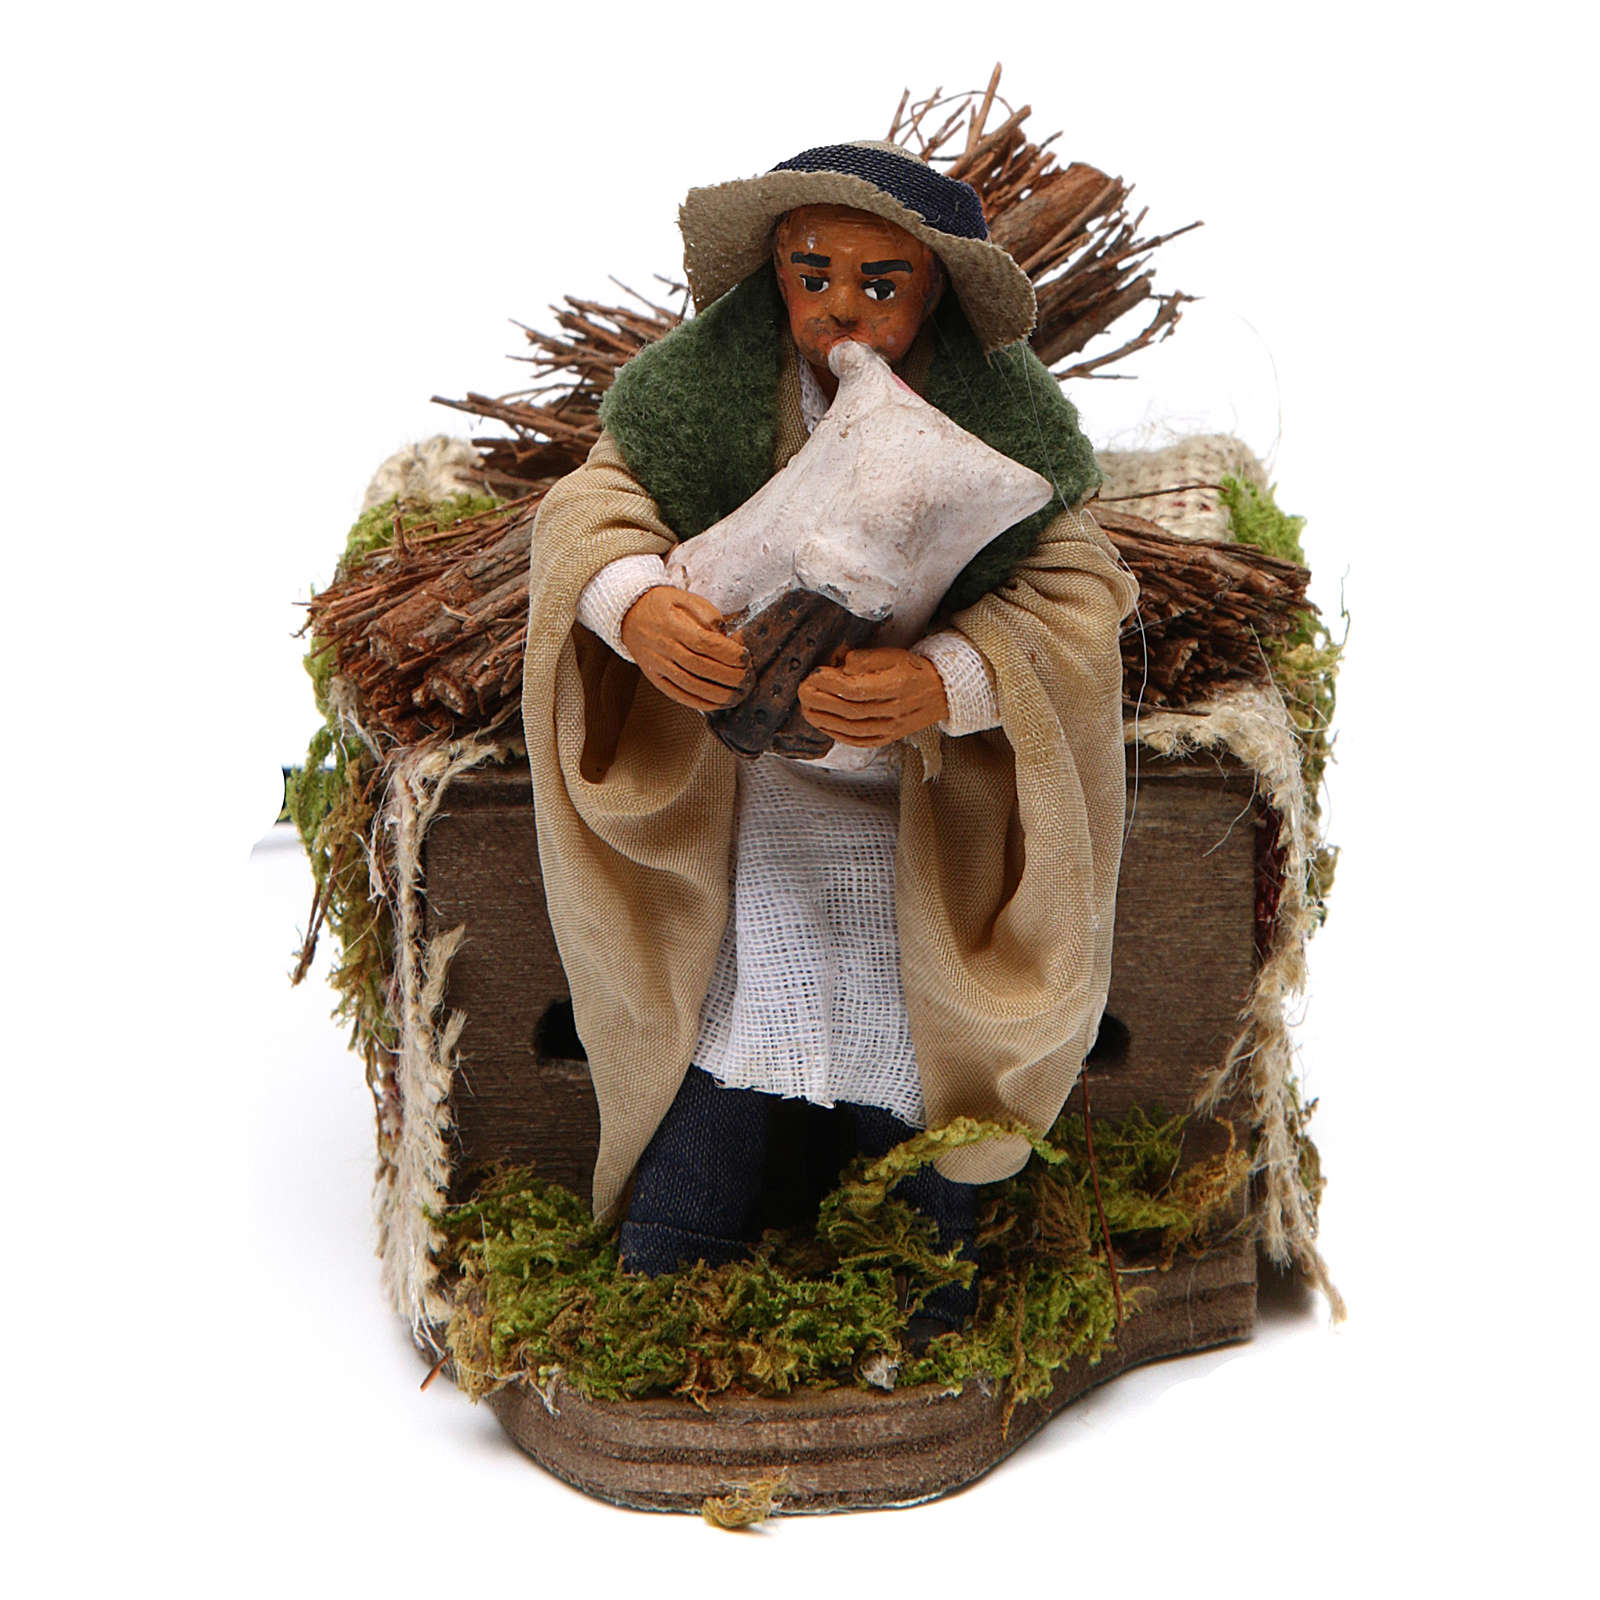 Moving 10 cm bagpiper Neapolitan nativity scene 4